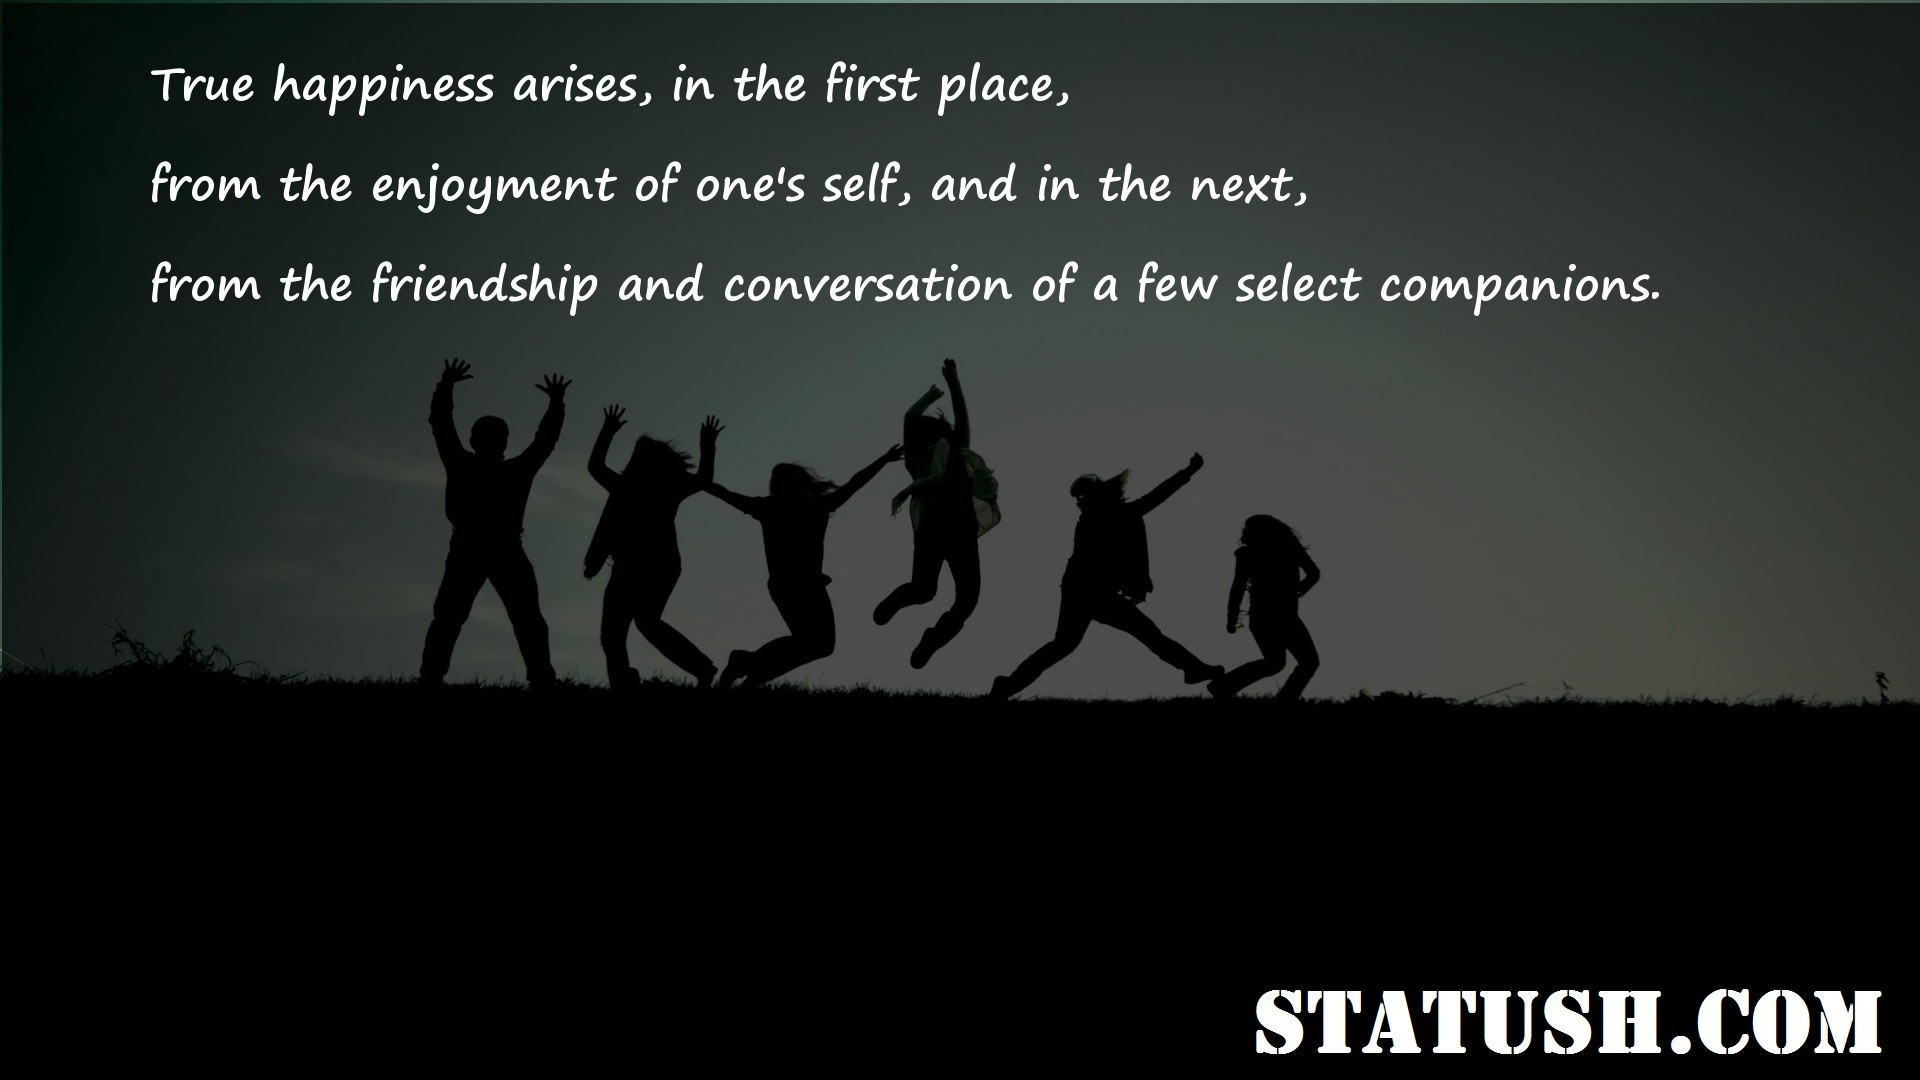 True happiness arises in the first place